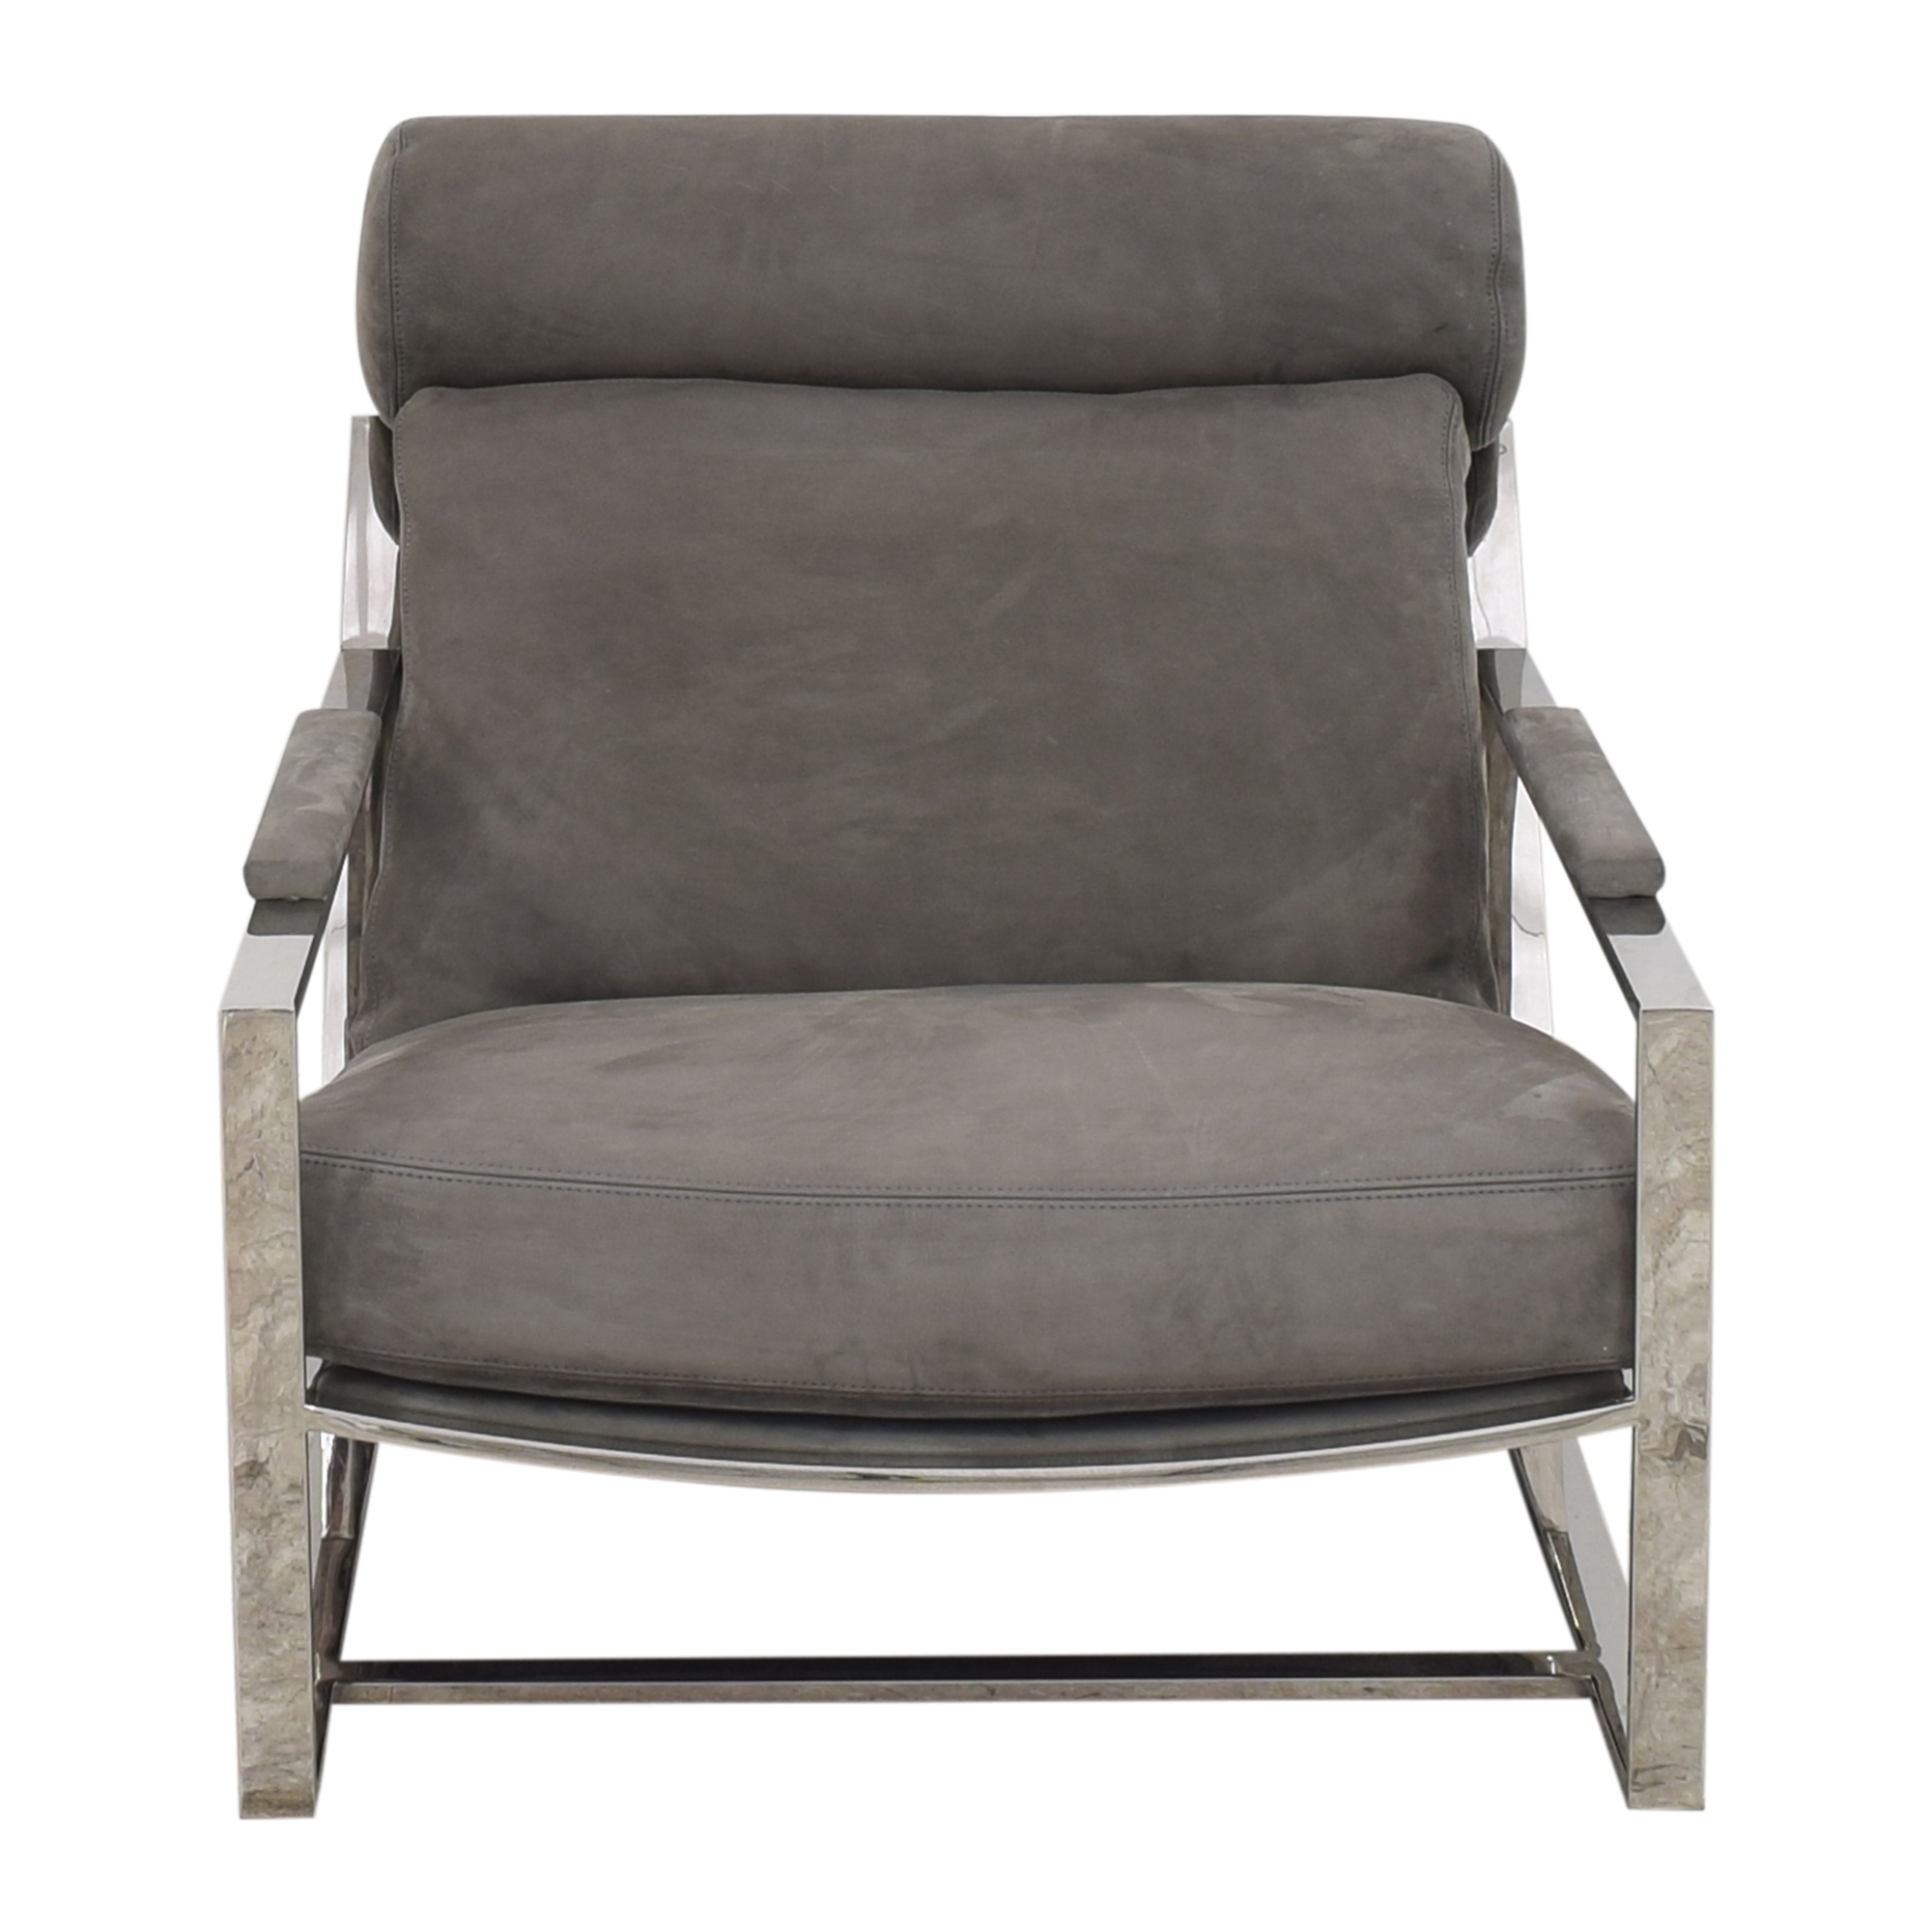 Restoration Hardware Restoration Hardware Milo Baughman Model #3418 Chair by Thayer Coggin dimensions